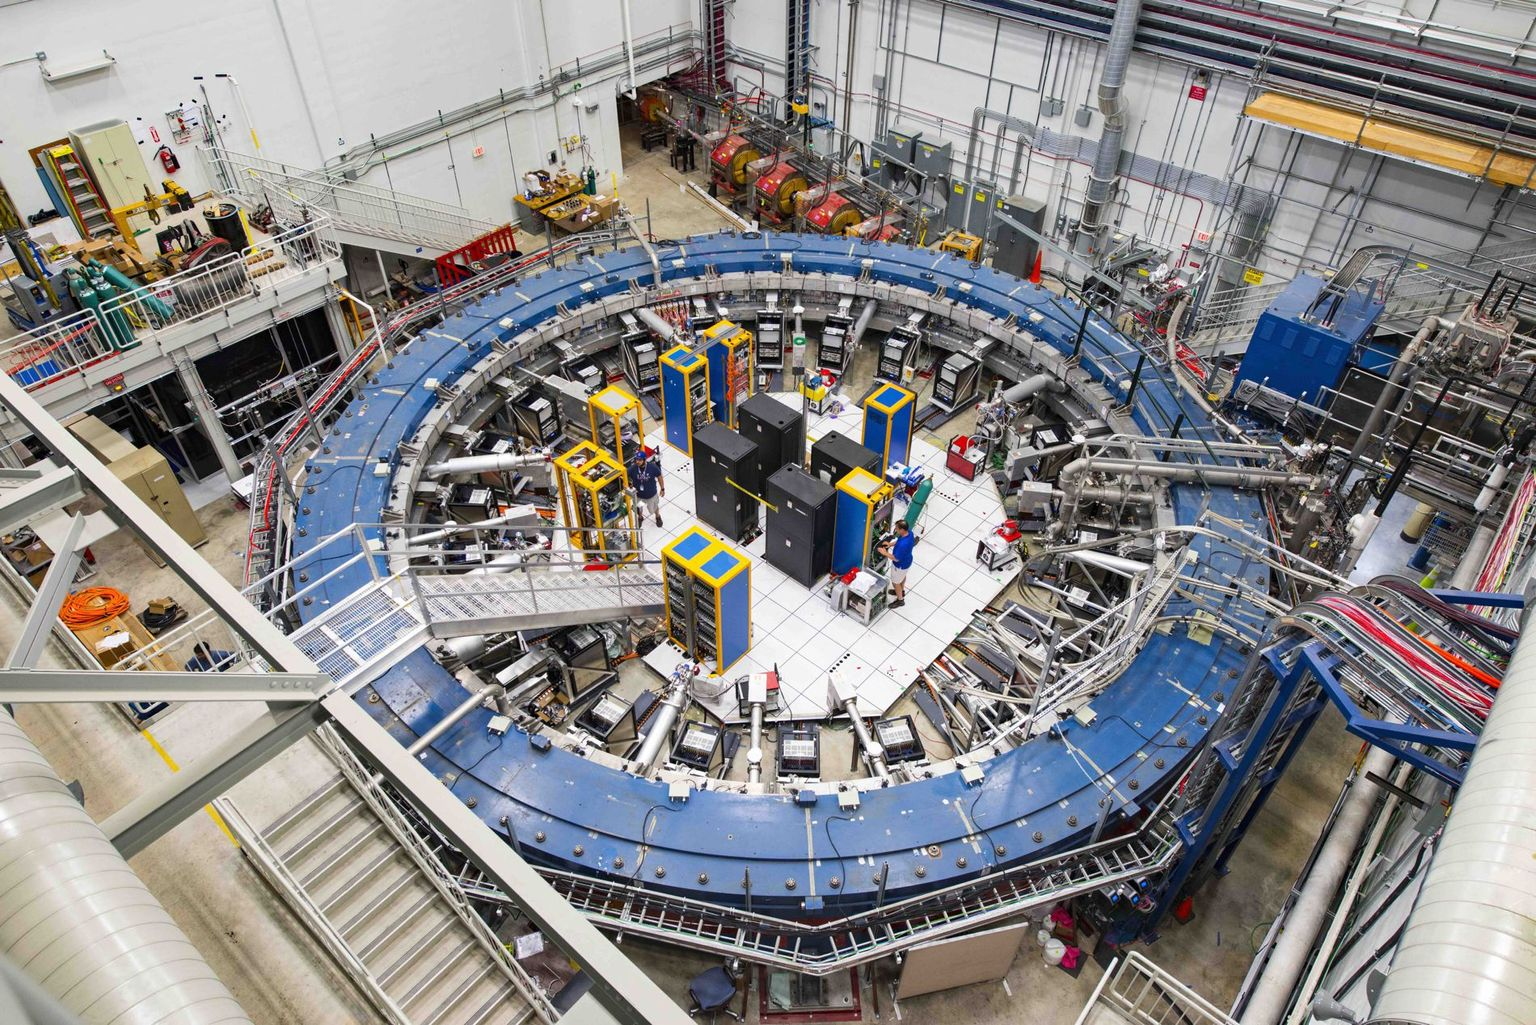 This ring magnet is part of the experiment used to precisely measure the magnetic dipole moment of muons at Fermilab near Chicago.